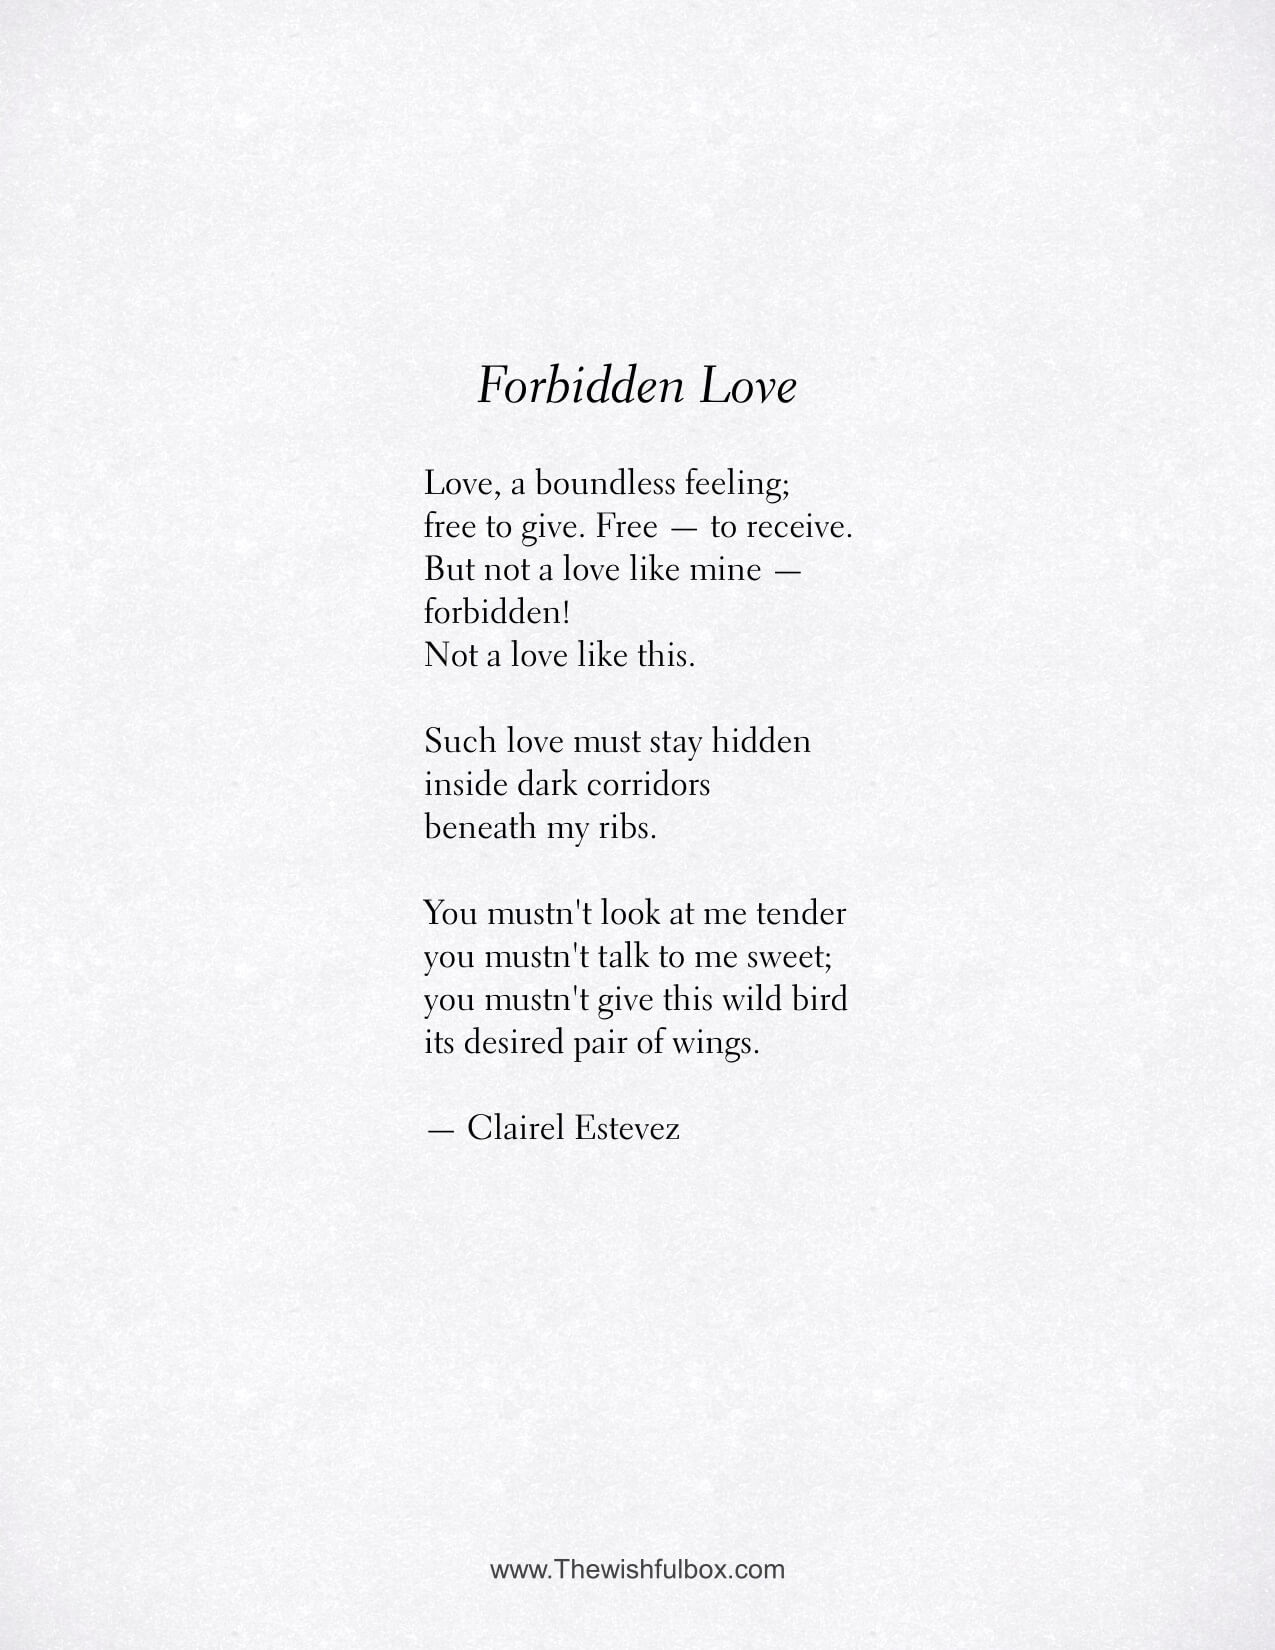 Forbidden Love Life And Love Poem Inspirational Poetry Love poems exploring the joys of romantic love, marriage, and lasting commitment. life and love poem inspirational poetry